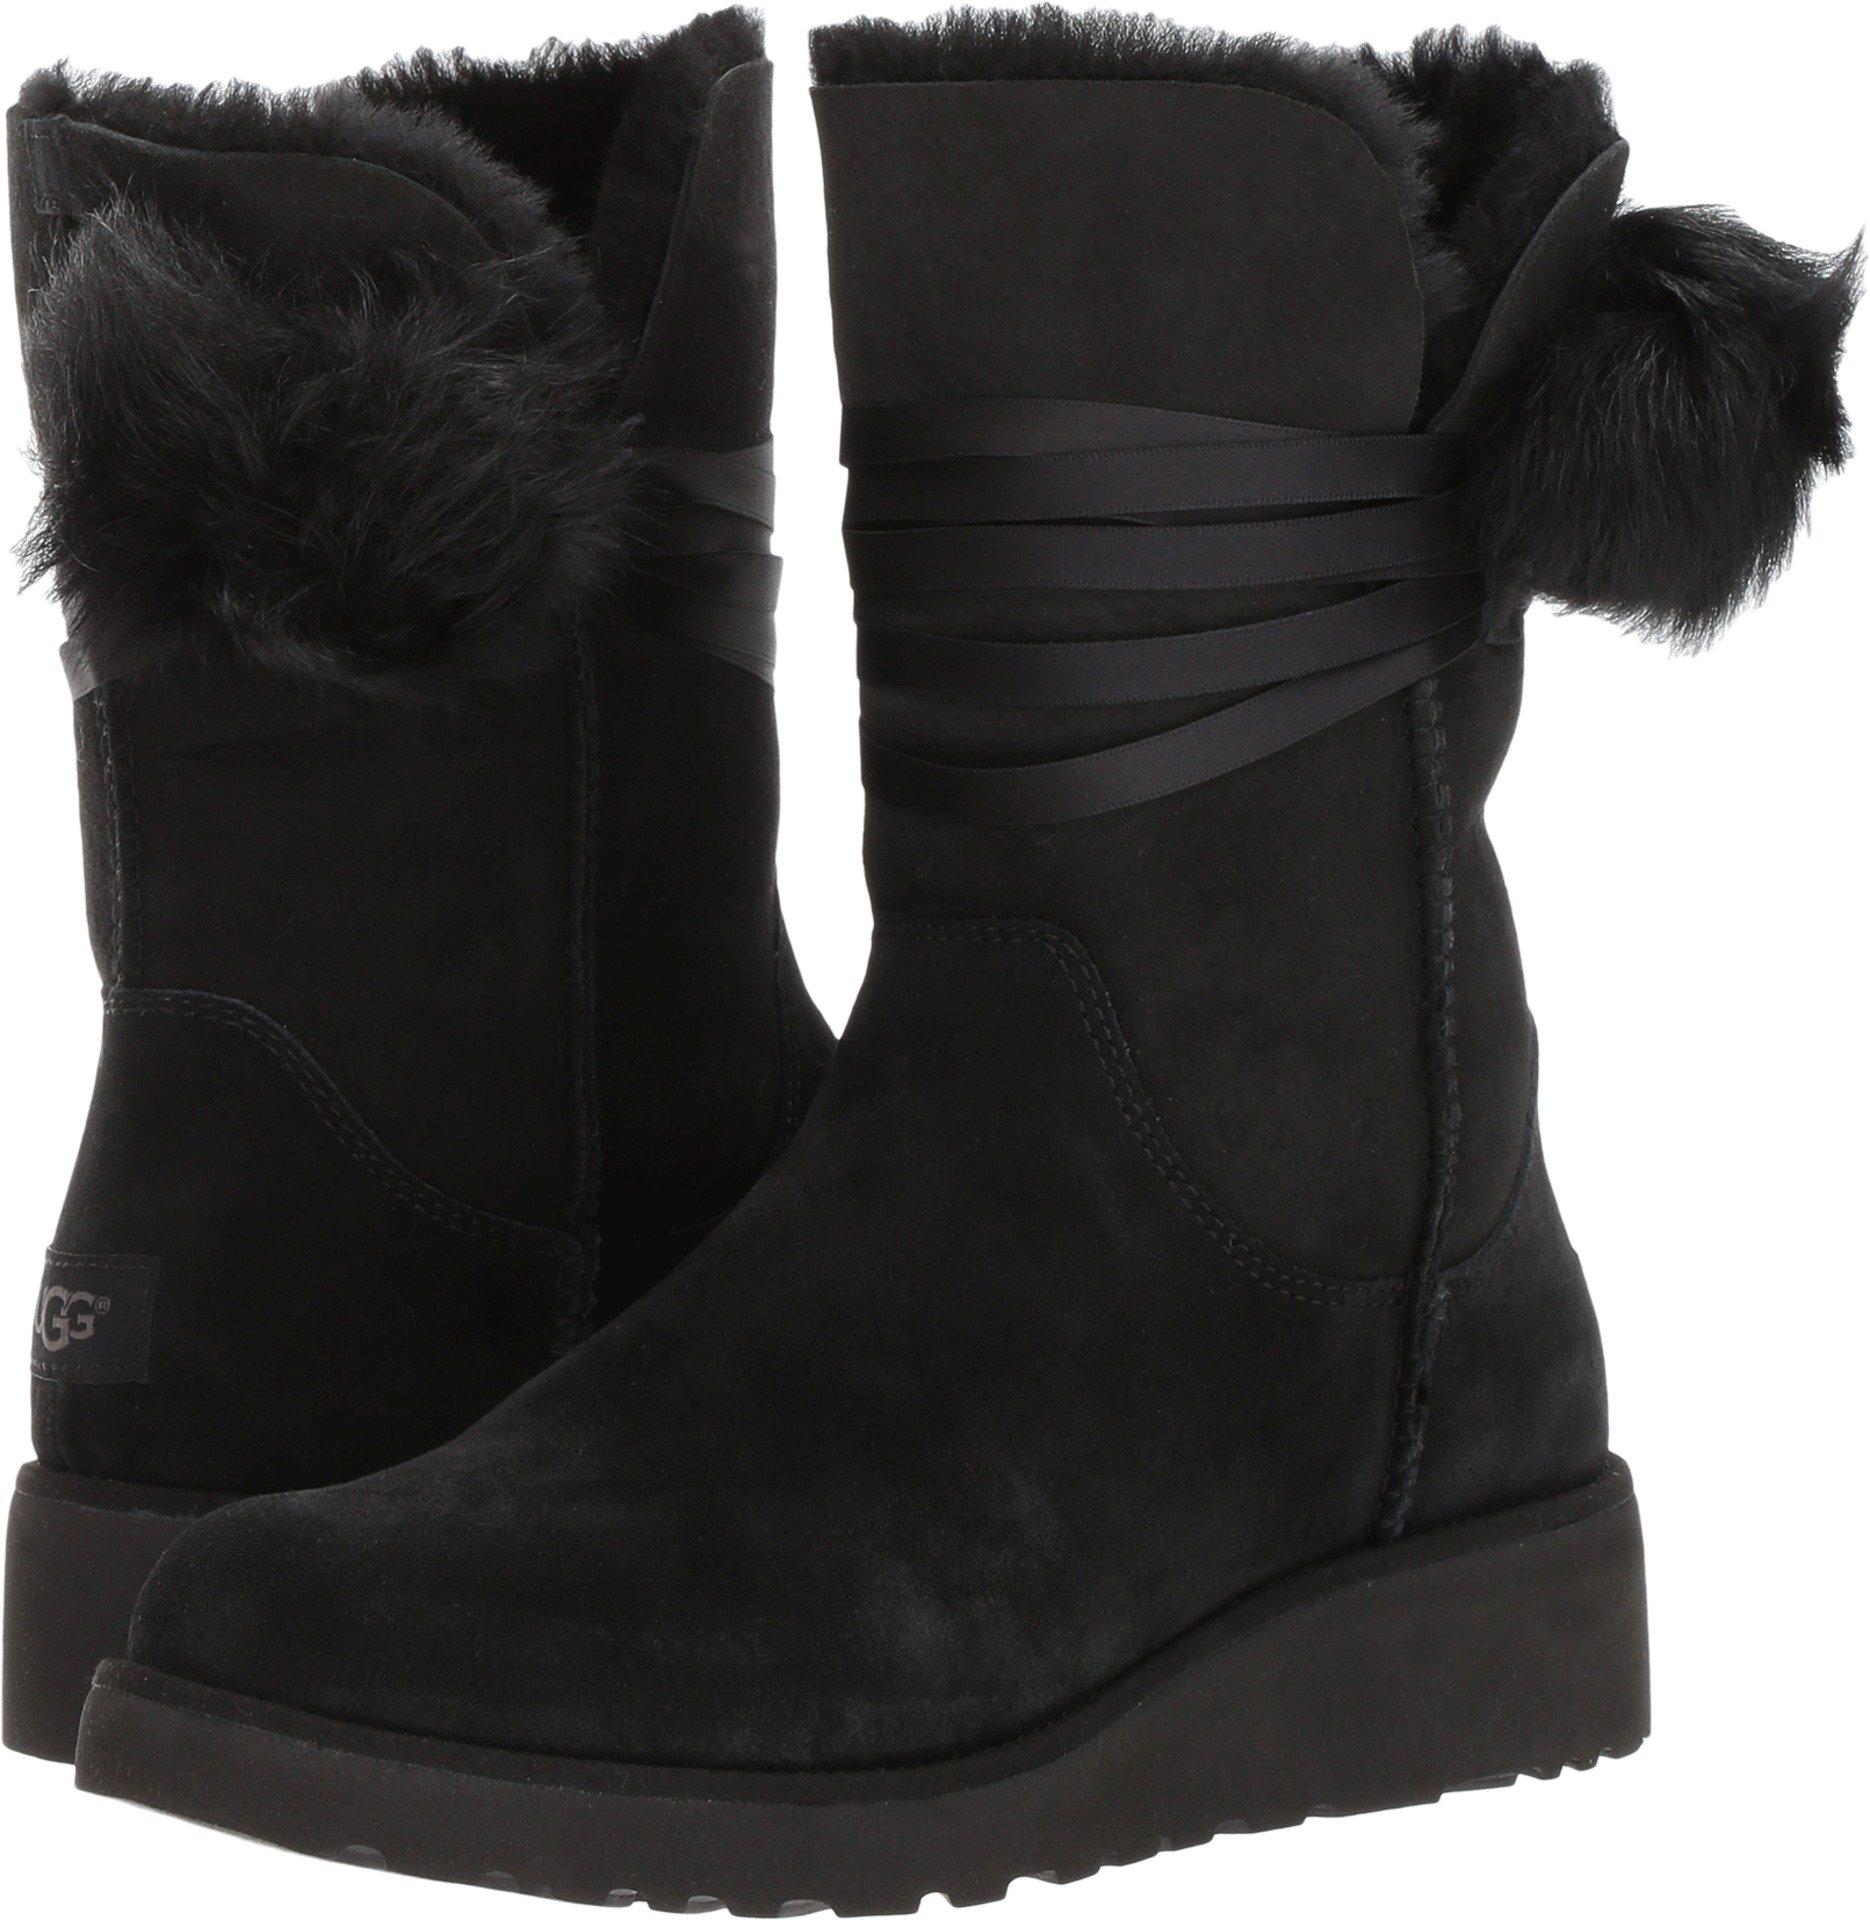 Women's Ugg, Brita Boots BLACK 12 M by UGG